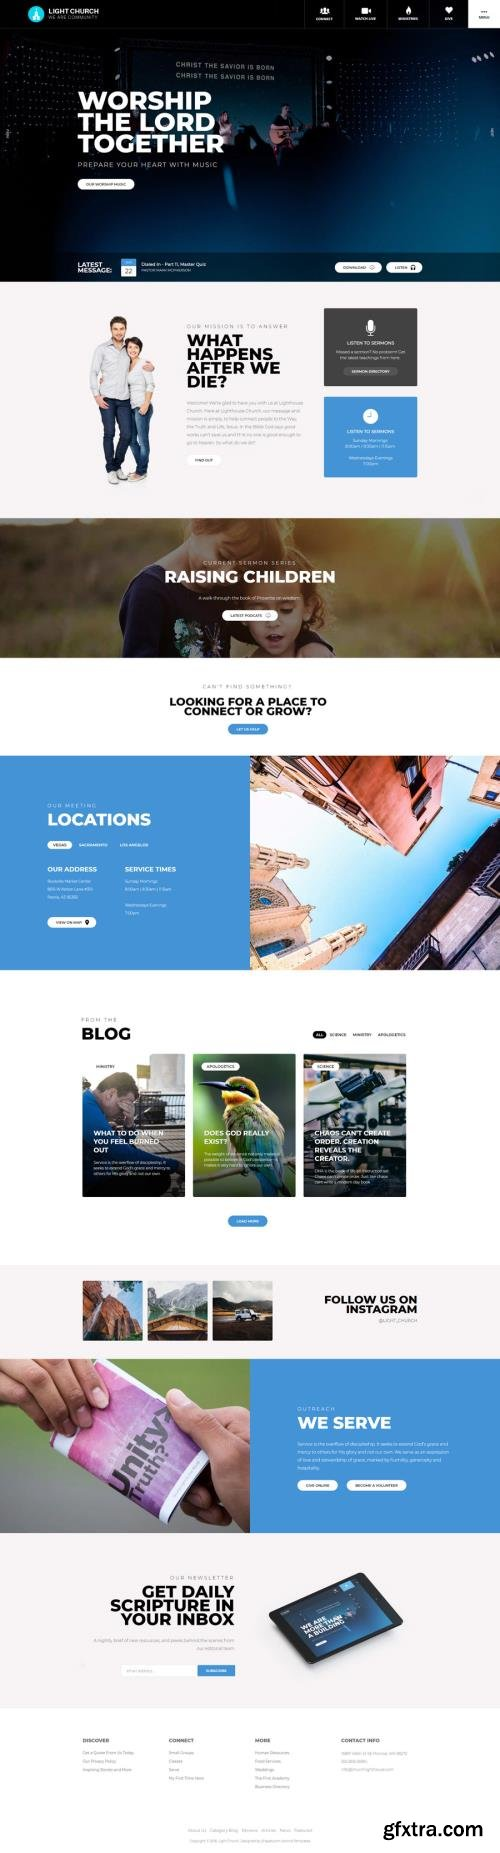 Shape5 - Light Church v1.0.4 - Joomla Template